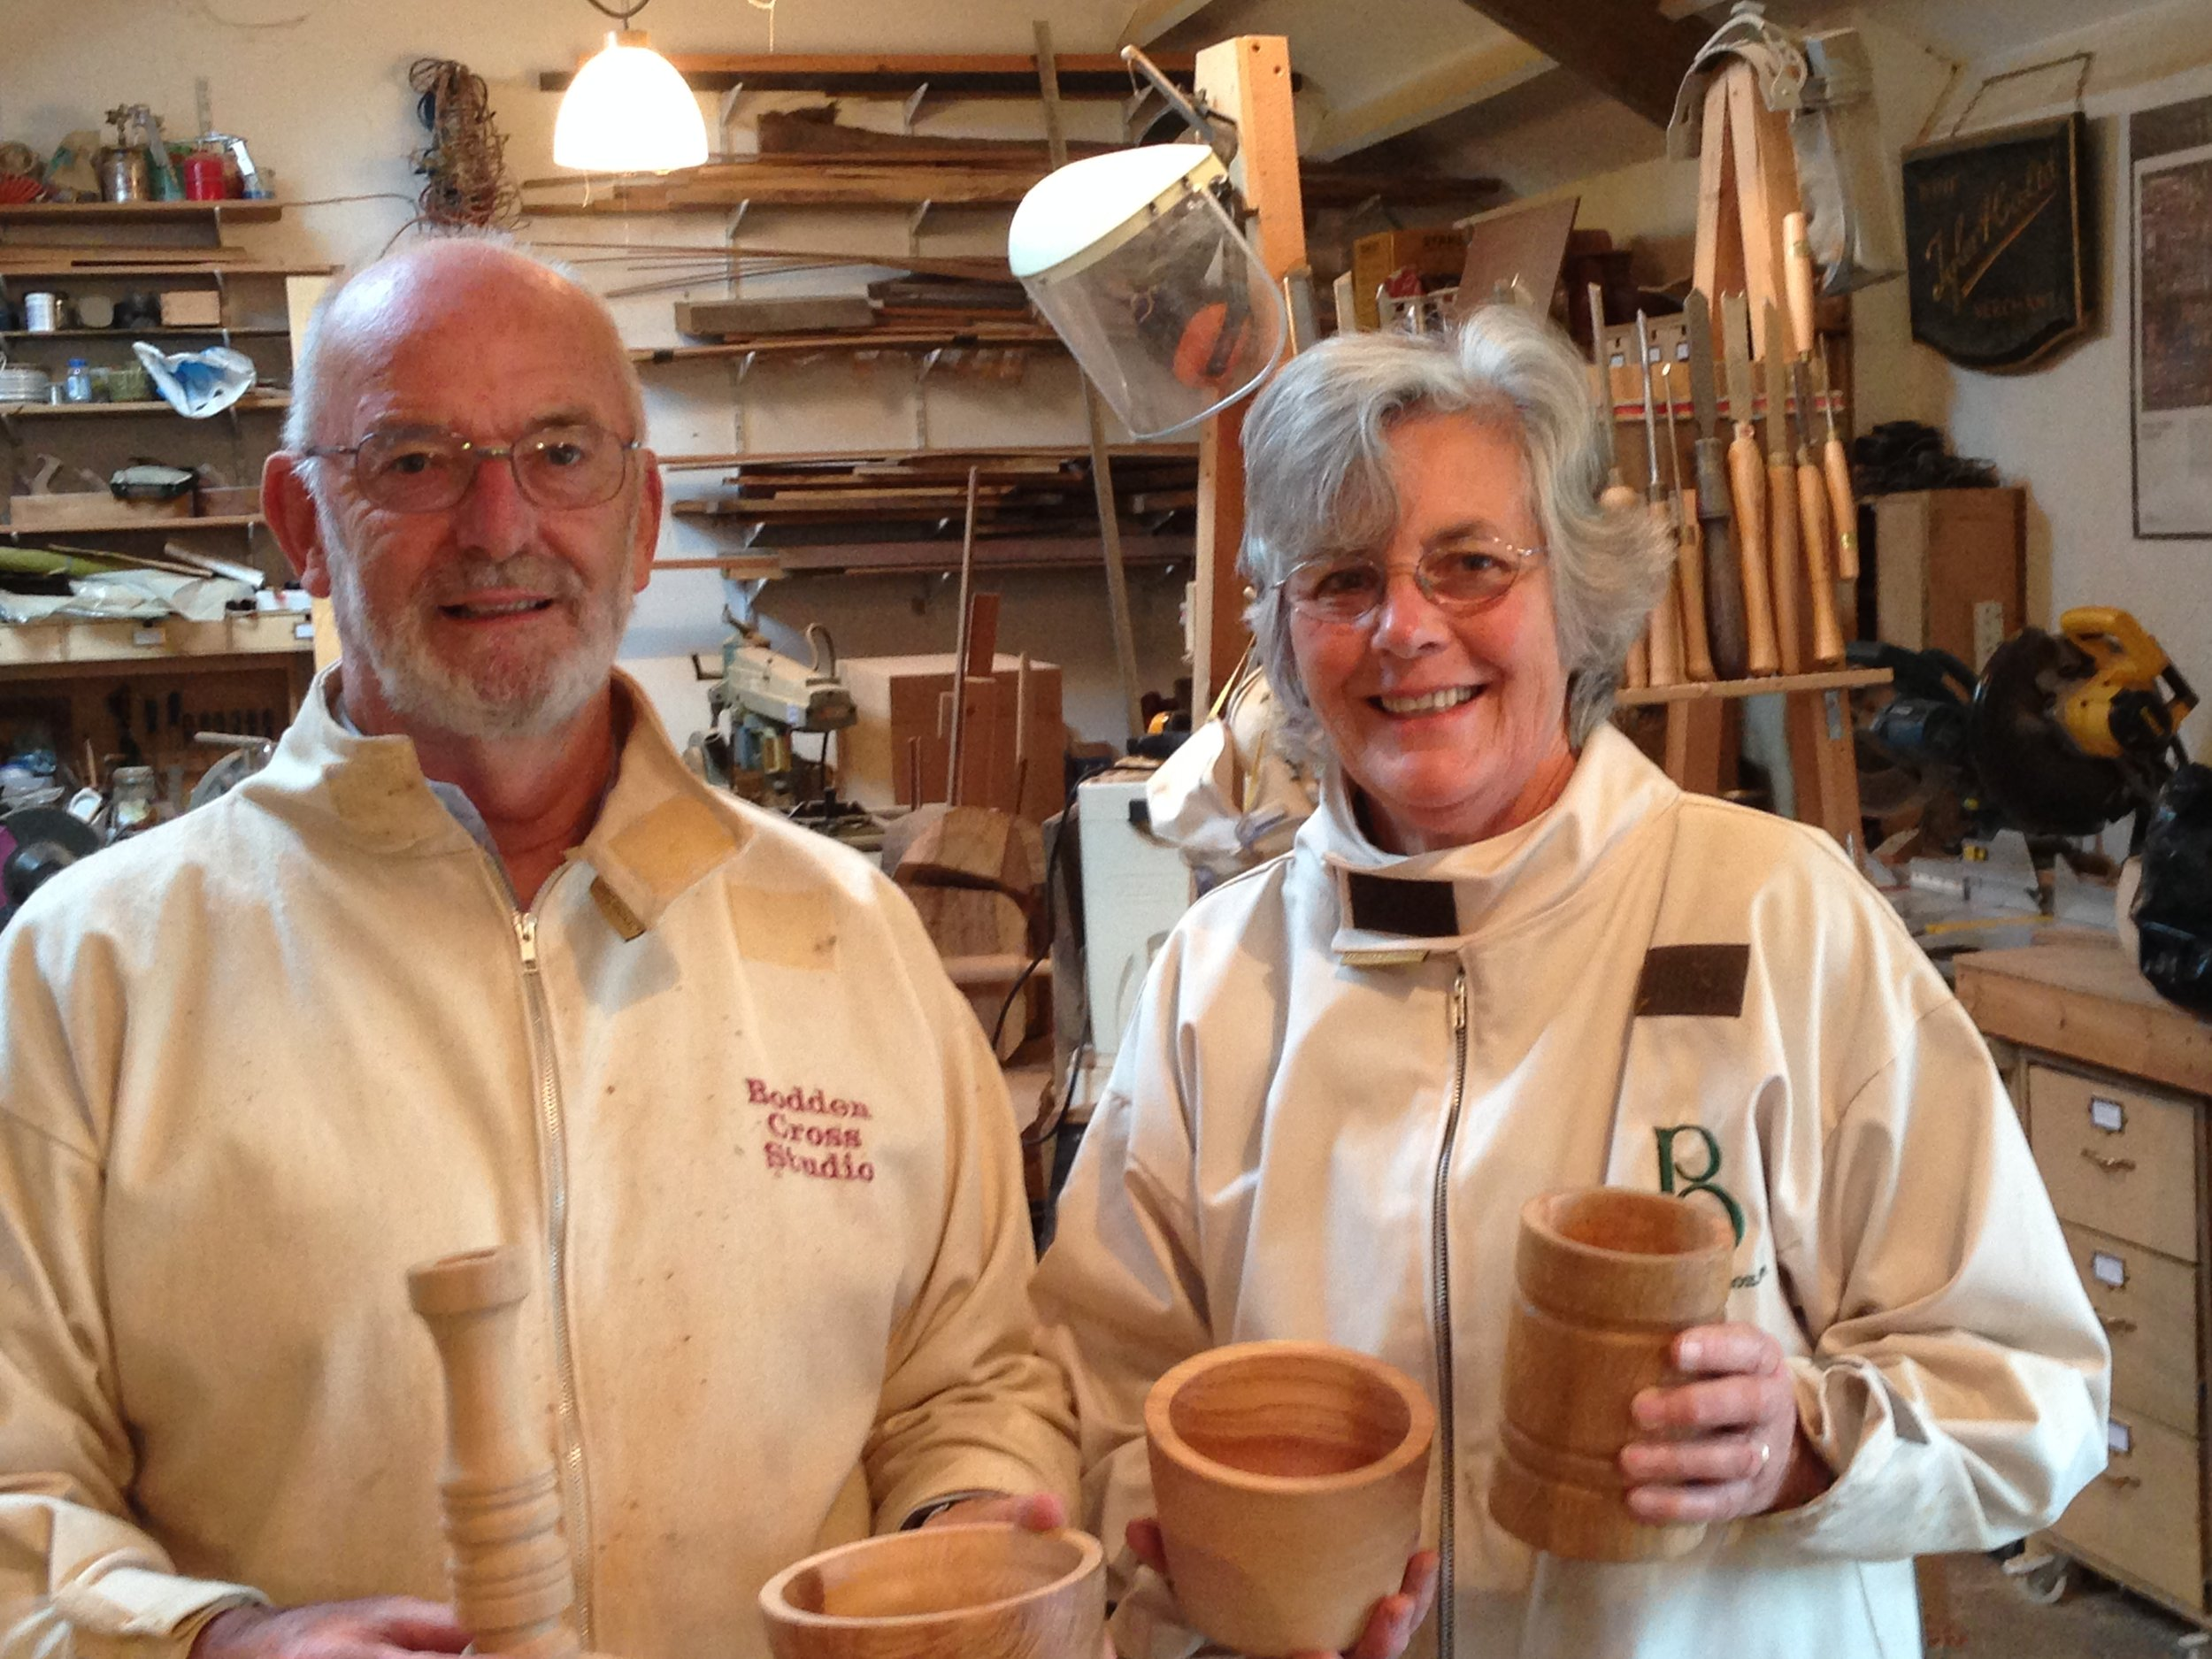 Husband & wife creating bowls and learning spindle work.